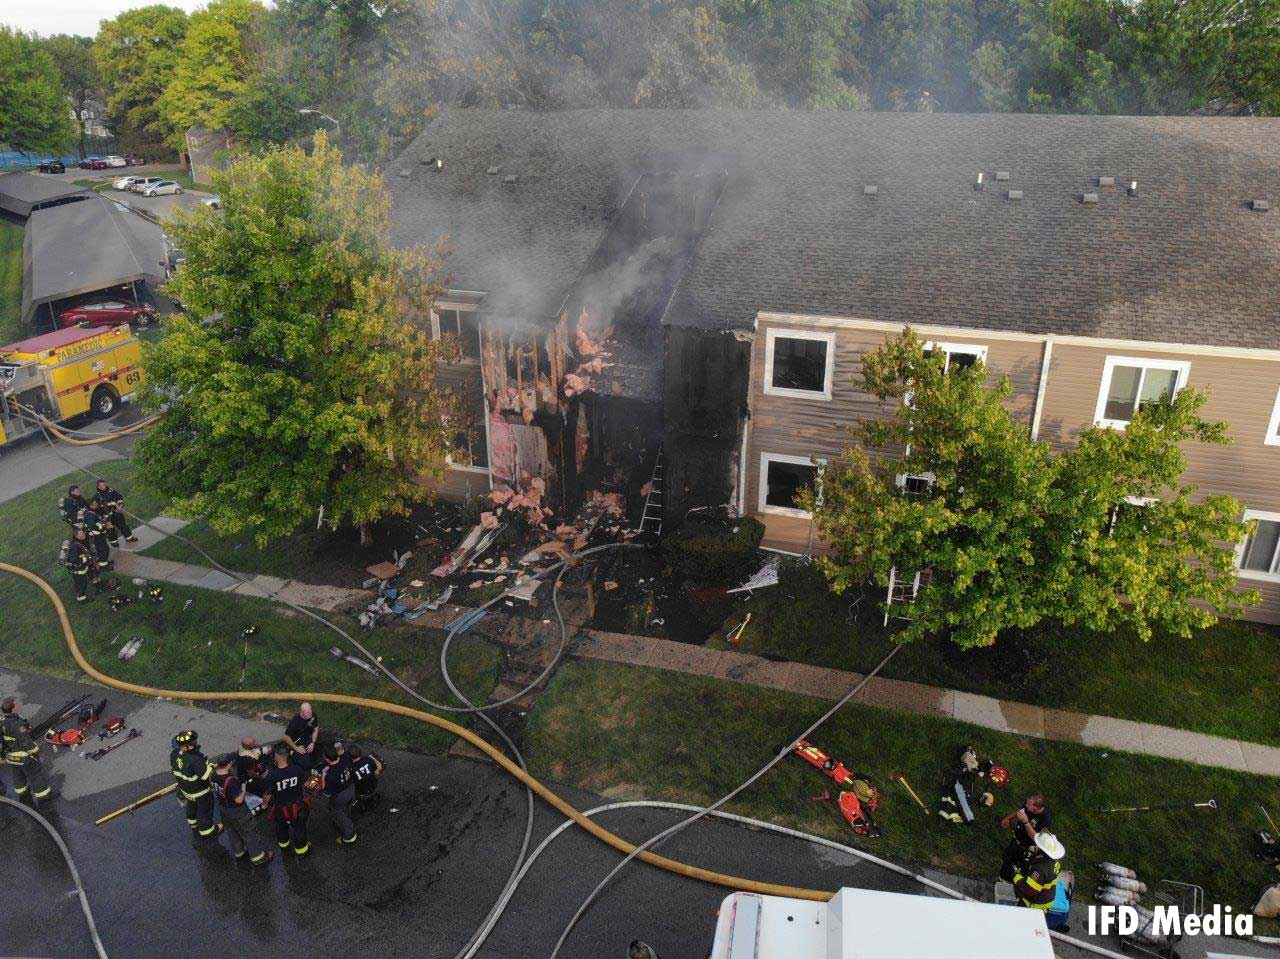 A look at the apartment fire scene from above